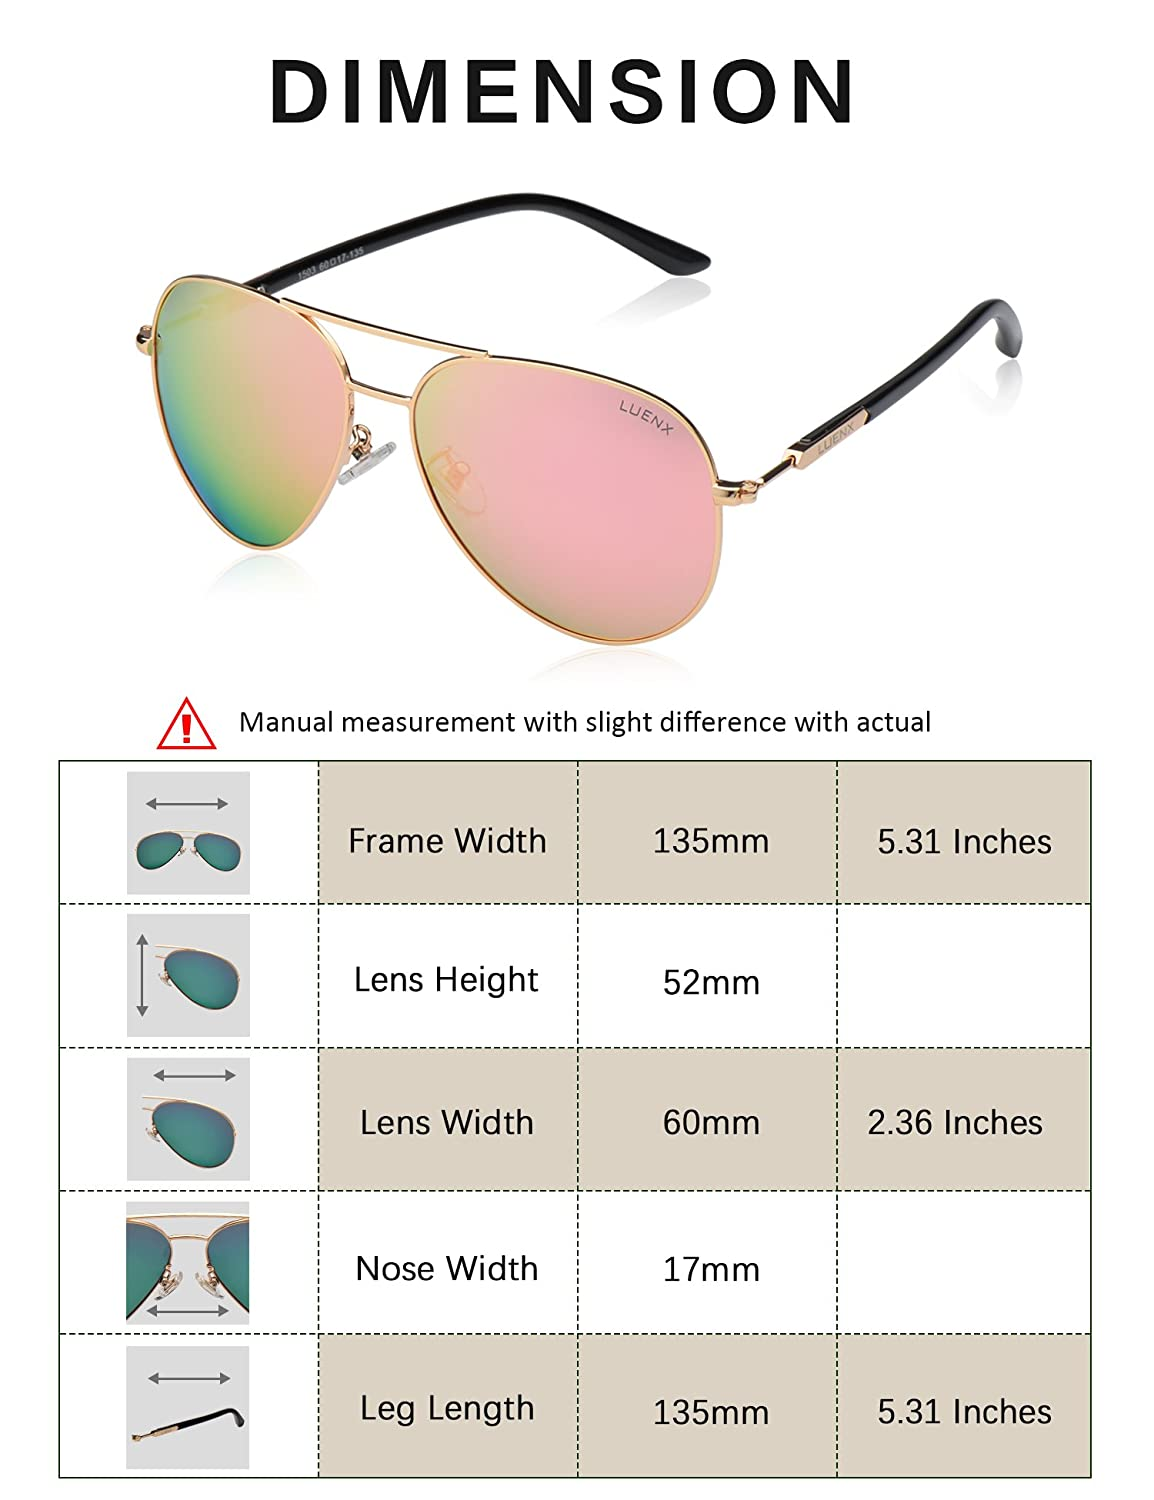 75a4bf783 LUENX Aviator Sunglasses Womens Polarized Mirror with Case - UV 400  Protection 60MM A-1503-15